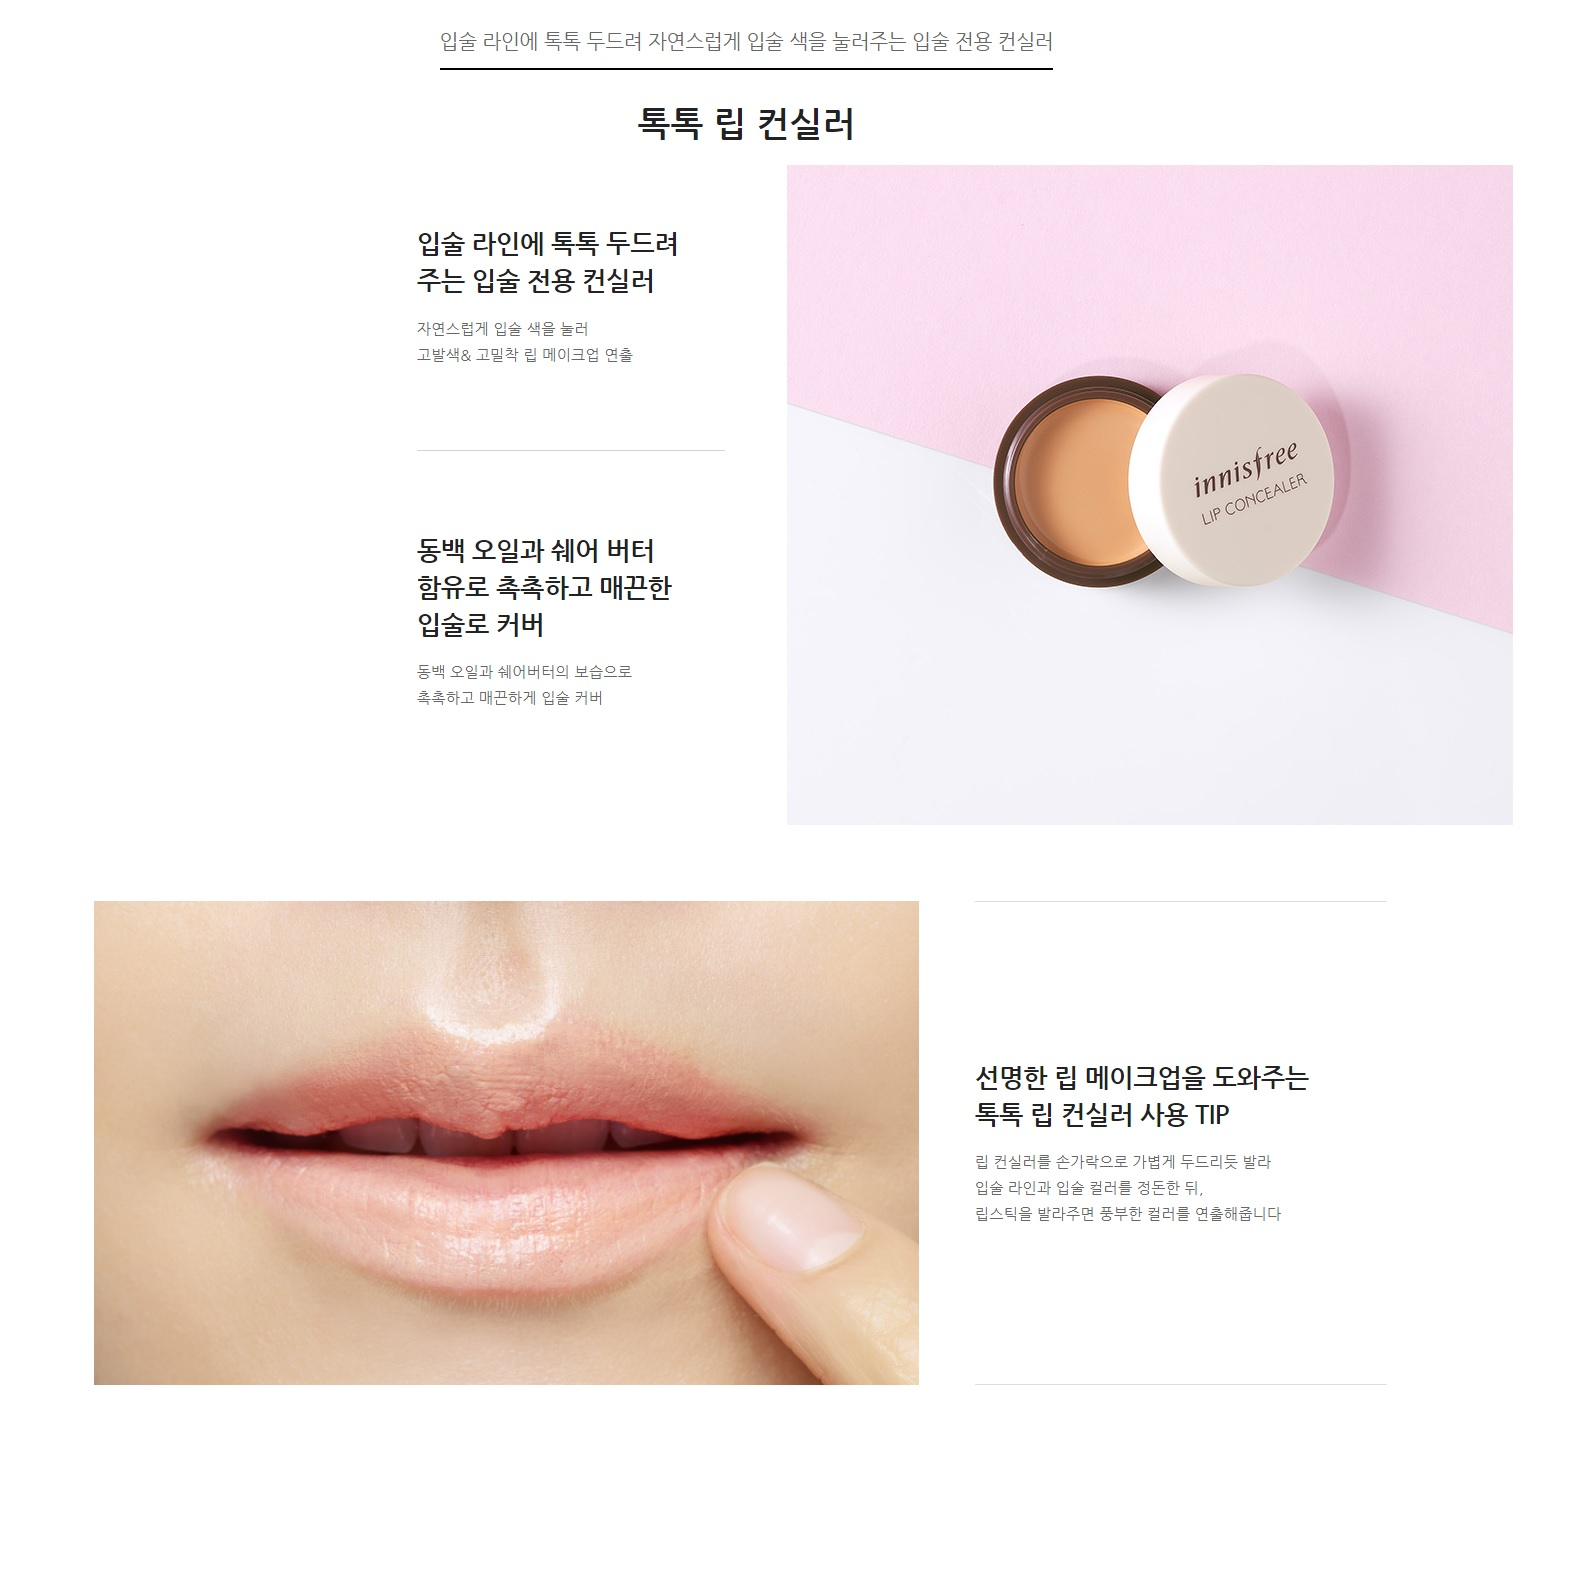 Innisfree Tapping Lip Concealer 3.5g korean cosmetic skincare product online shop malaysia china usa1